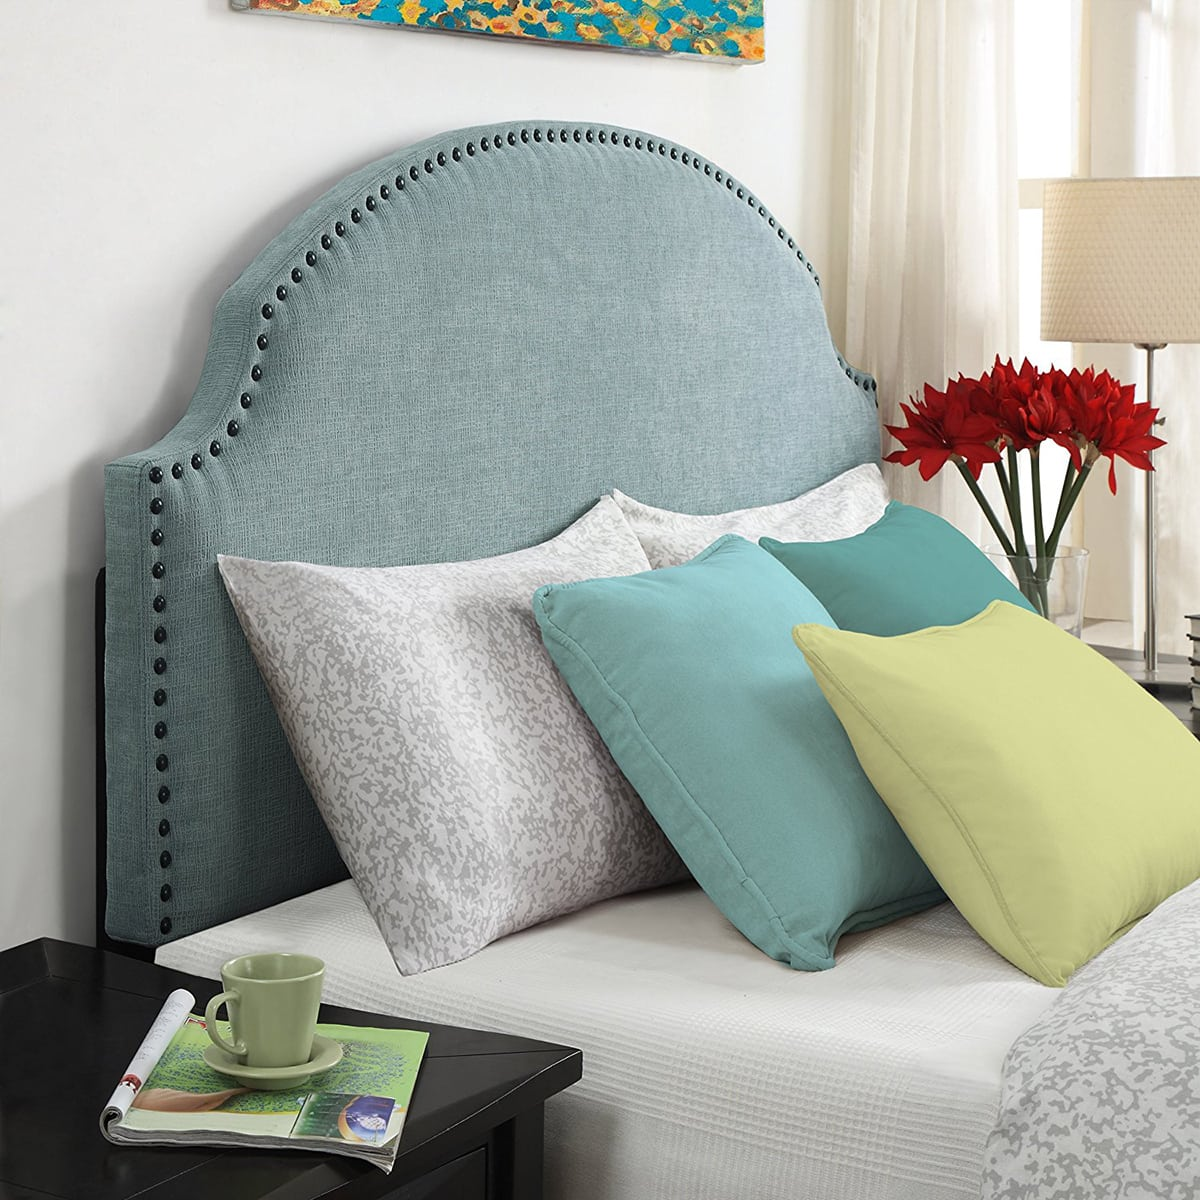 if you arenu0027t a fan of diying then you can get a similar look with the headboard below click here